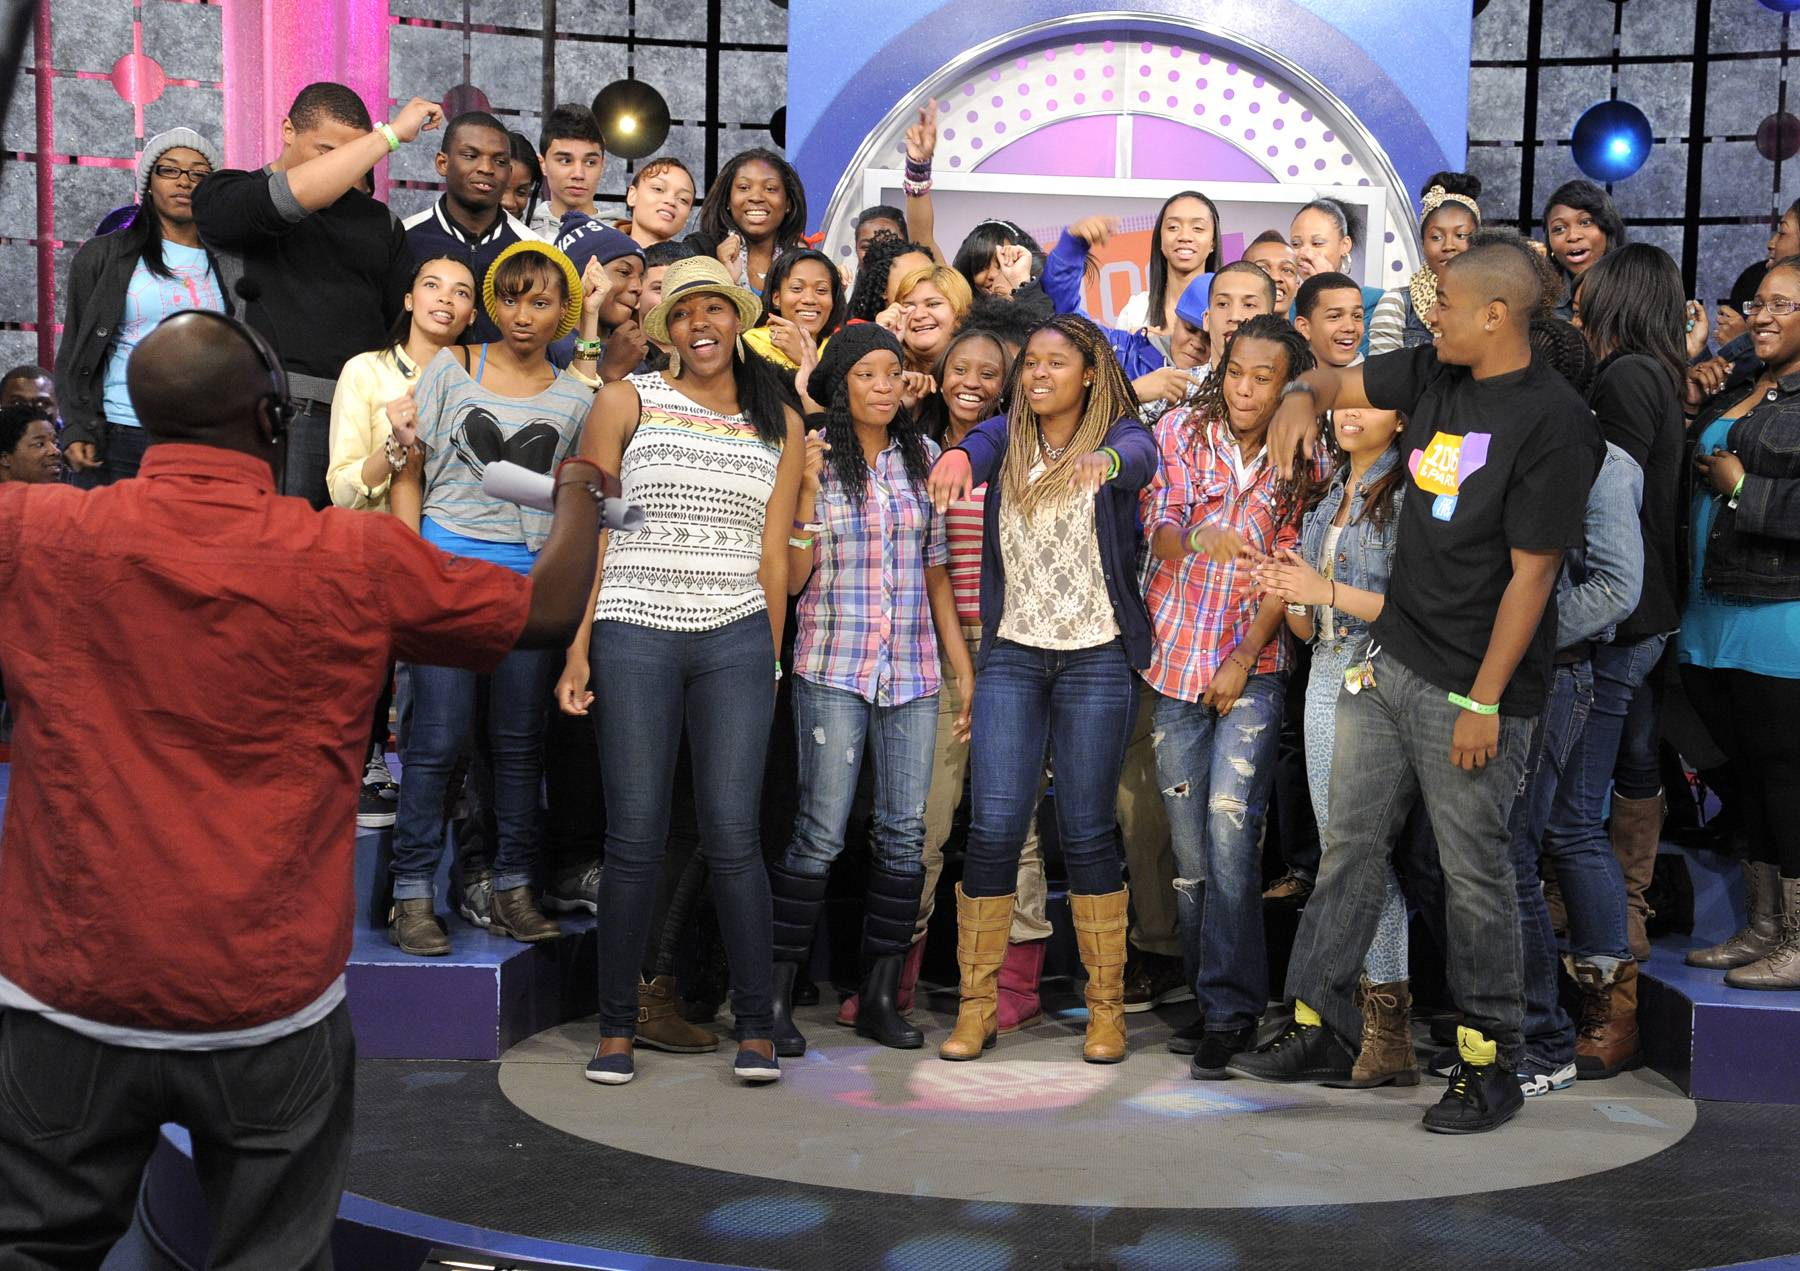 Audience Reacts - The livest audience at 106 & Park, April 12, 2012. (Photo: John Ricard / BET)